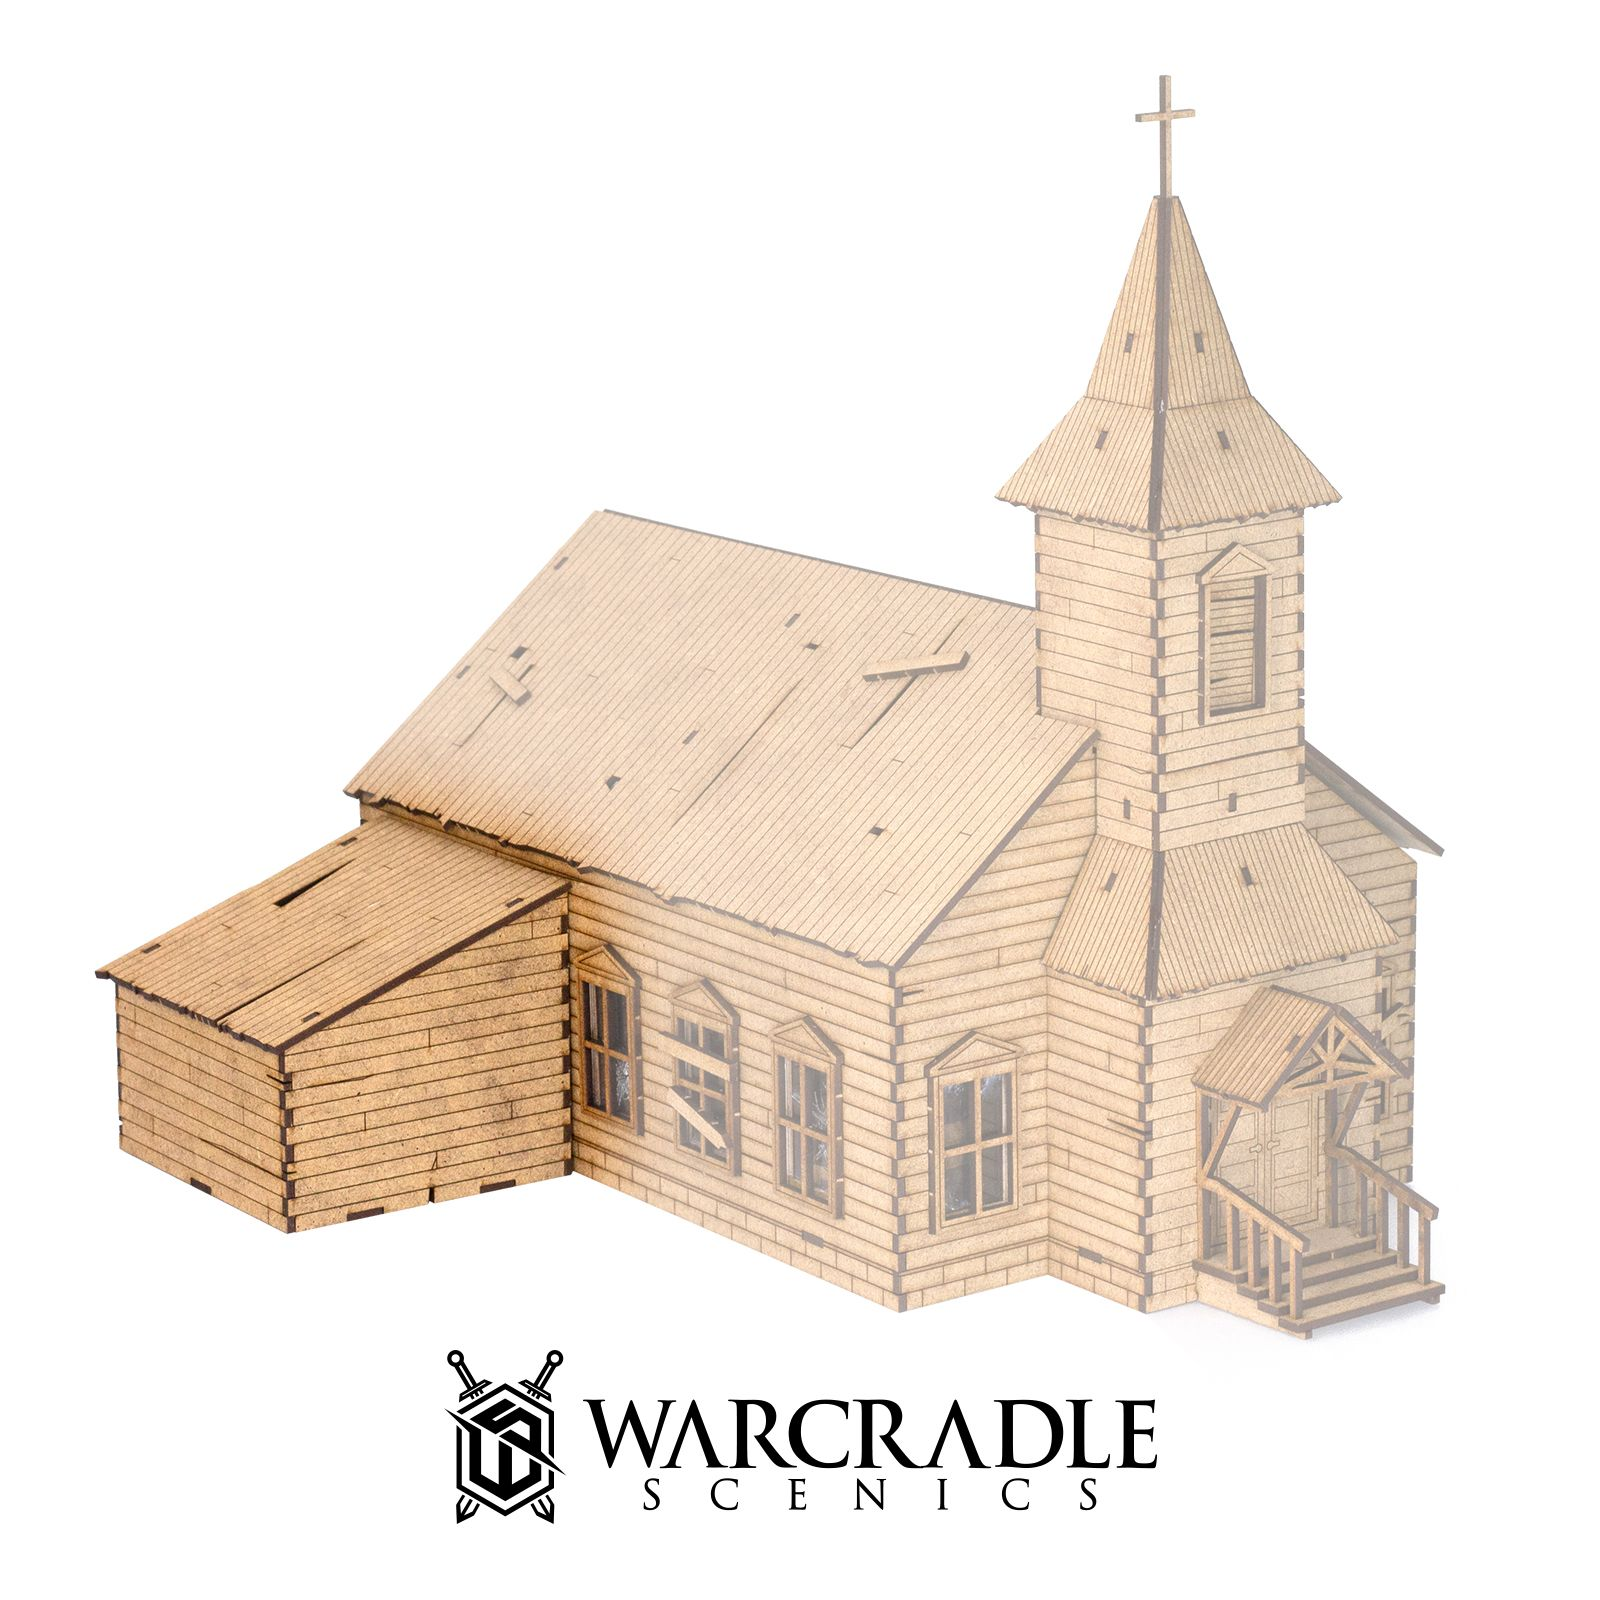 New Warcradle Scenics Woodford Church Upgrade Pack